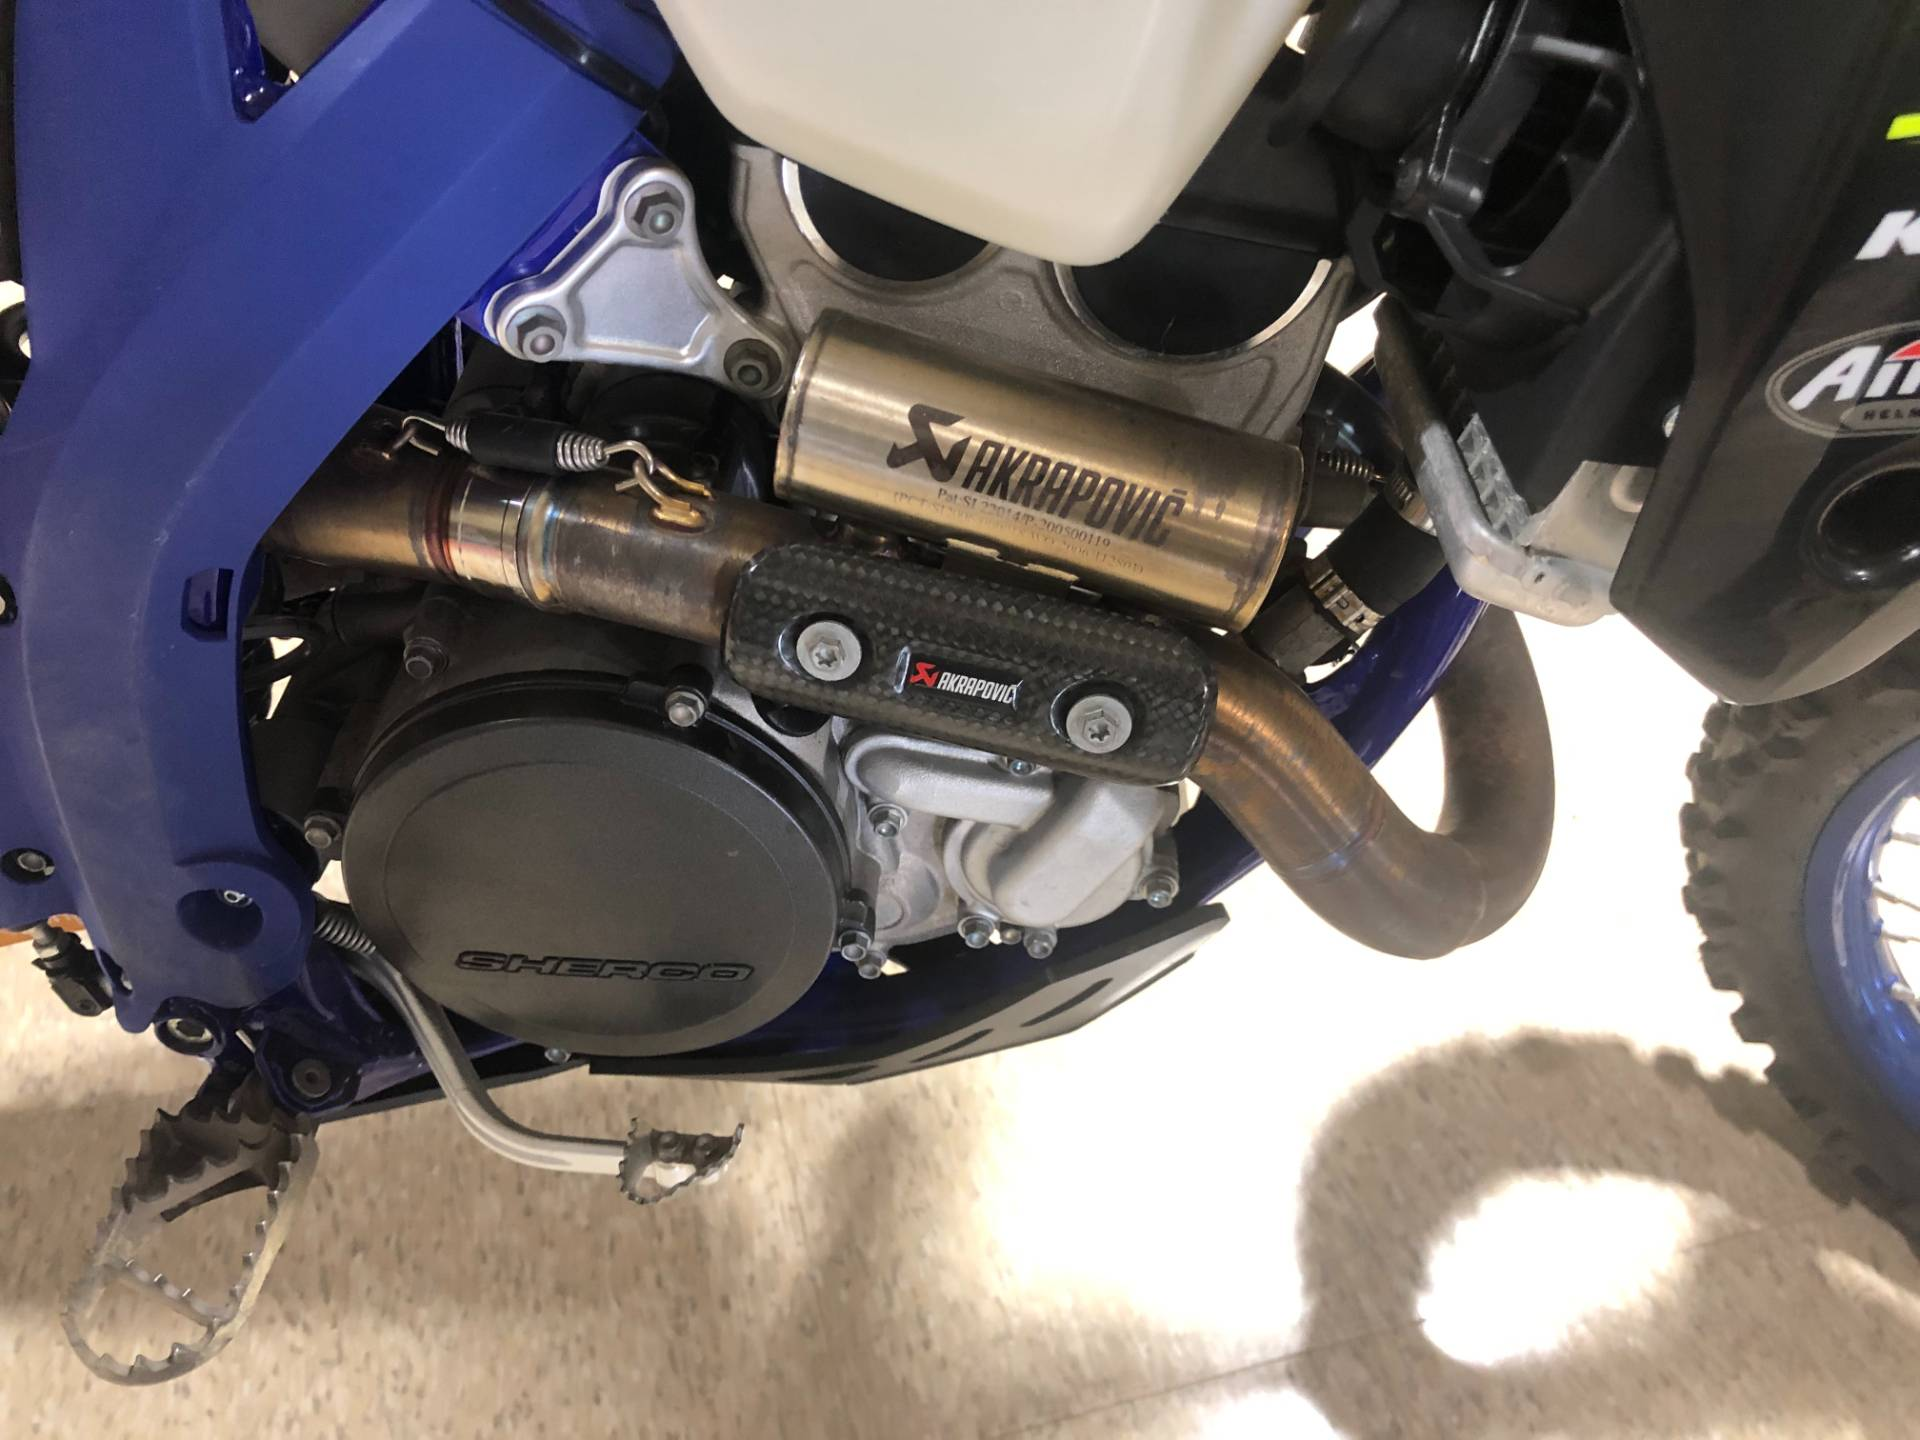 2020 Sherco 300 SEF Factory 4T in Slovan, Pennsylvania - Photo 2